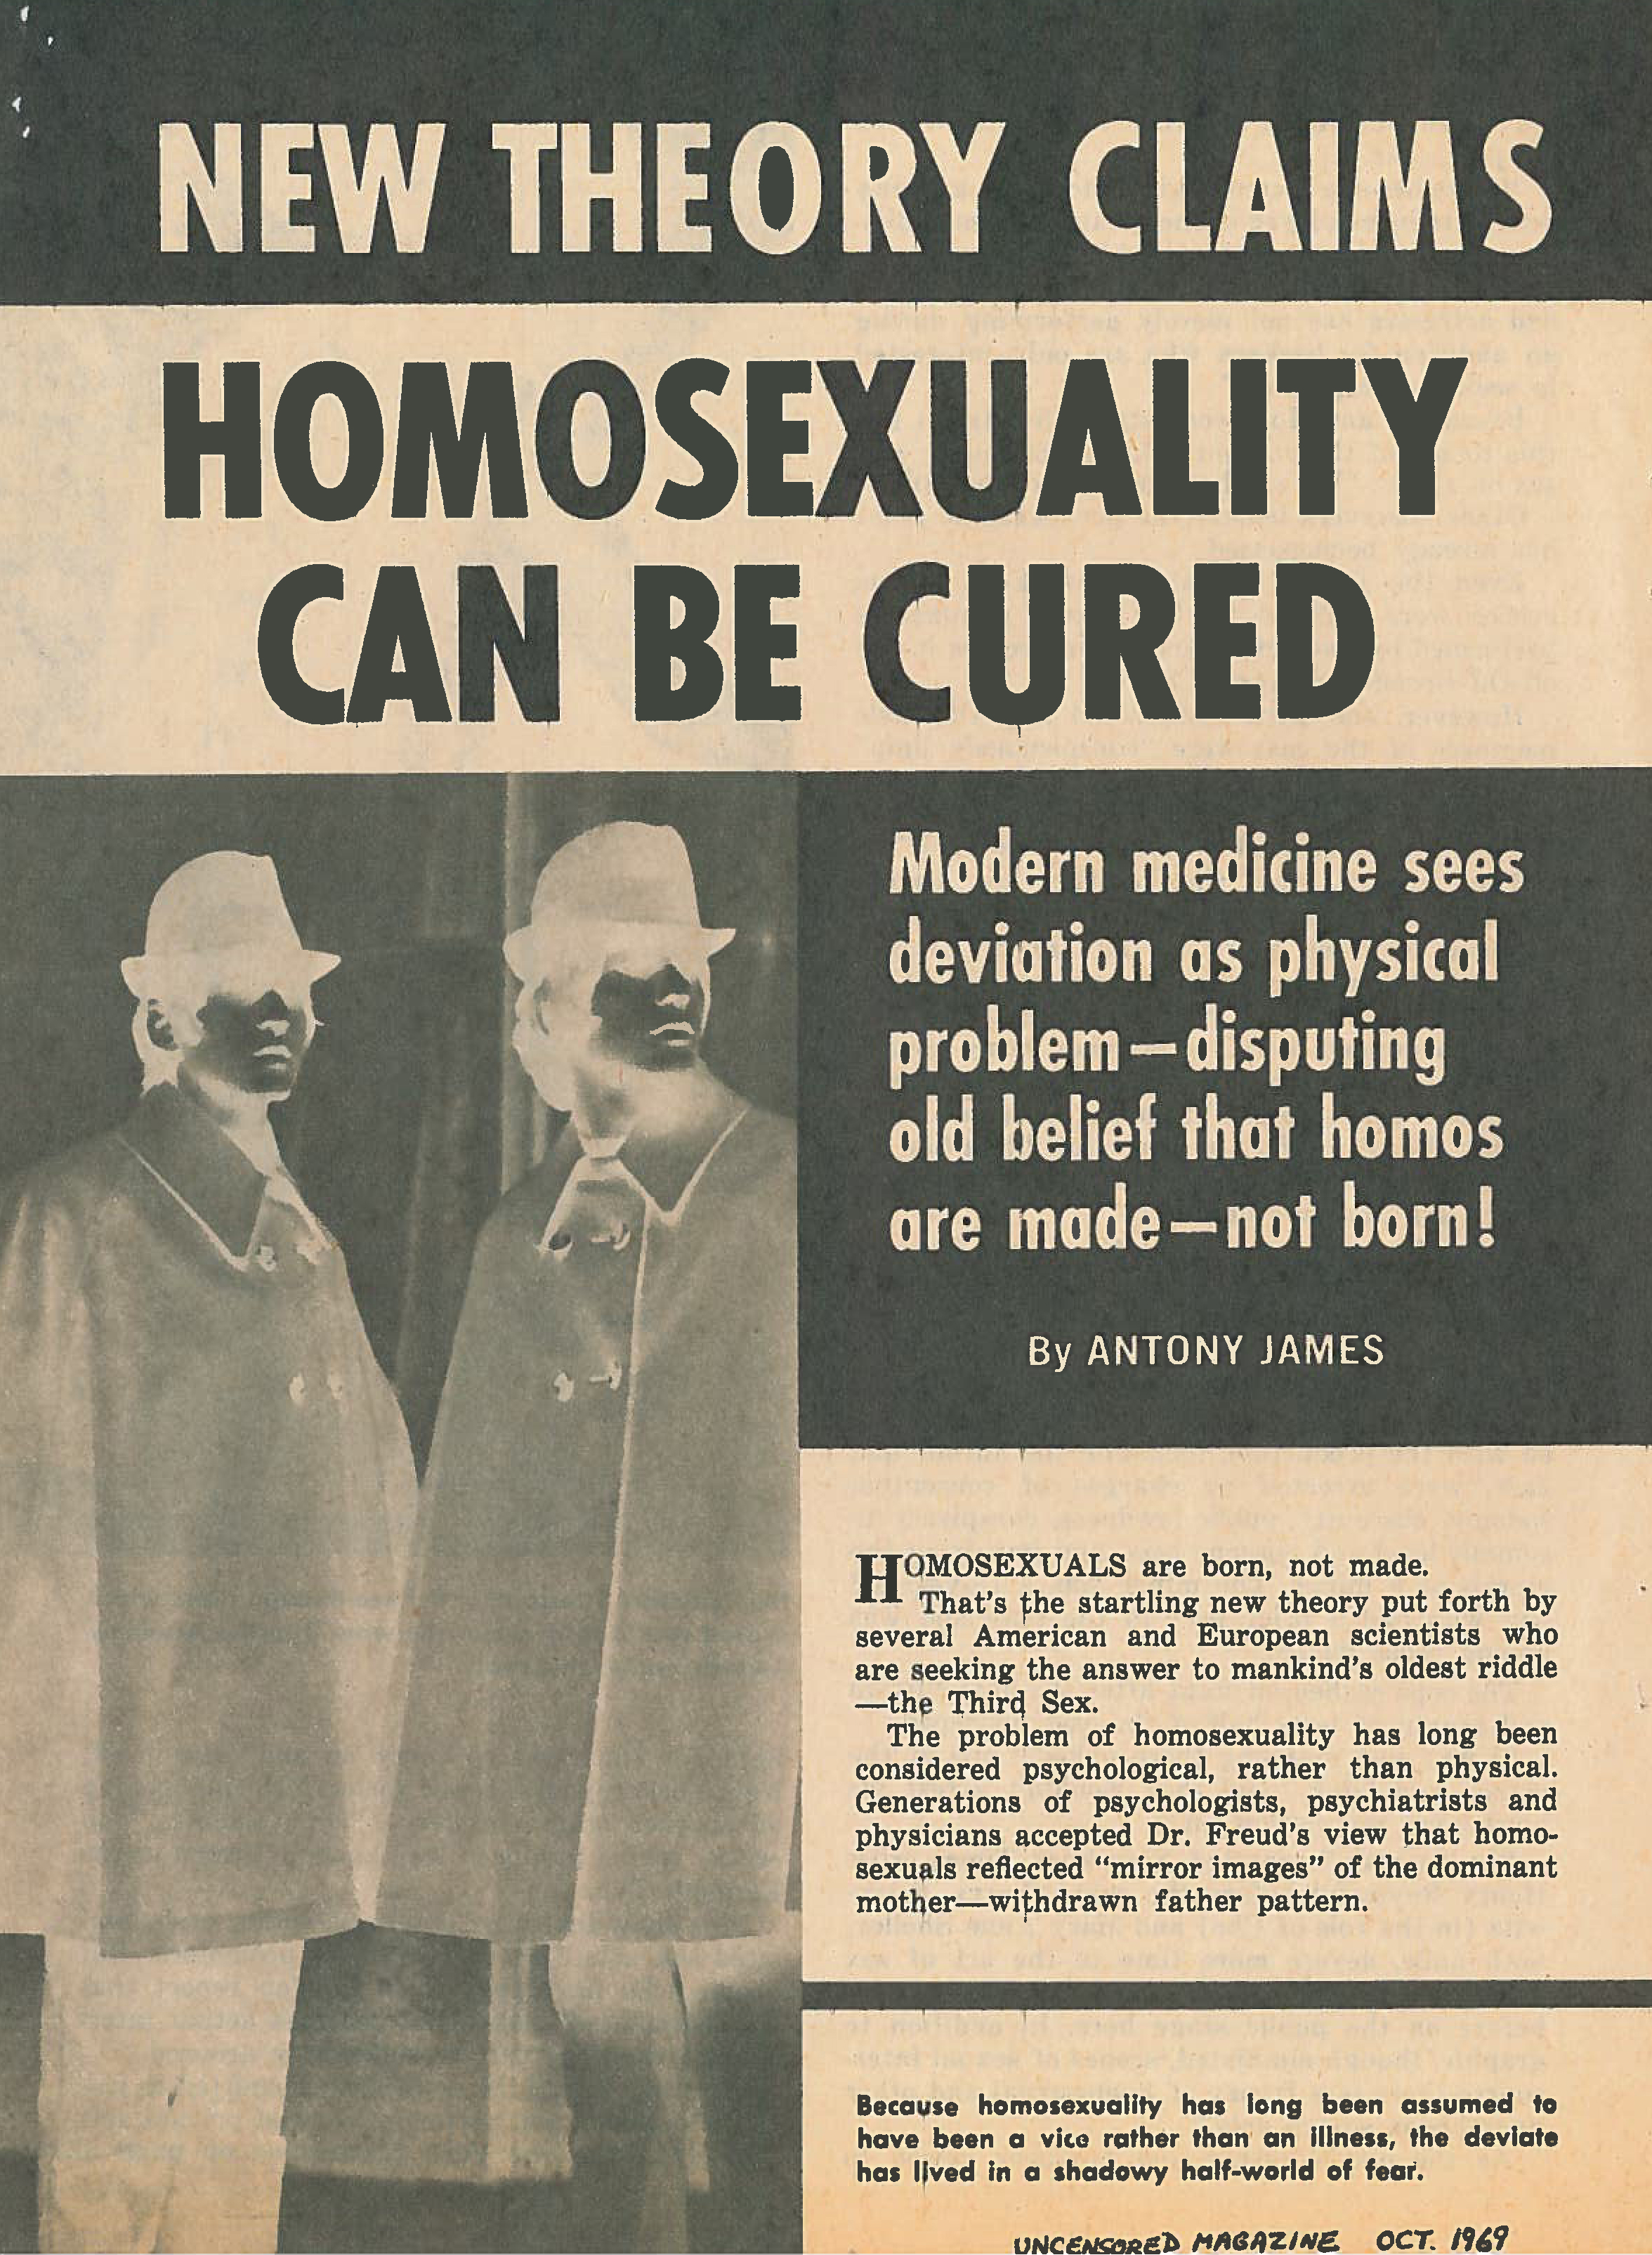 shock the gay away secrets of early gay aversion therapy revealed 2013 06 25 newtheoryclaimsimage11 jpg